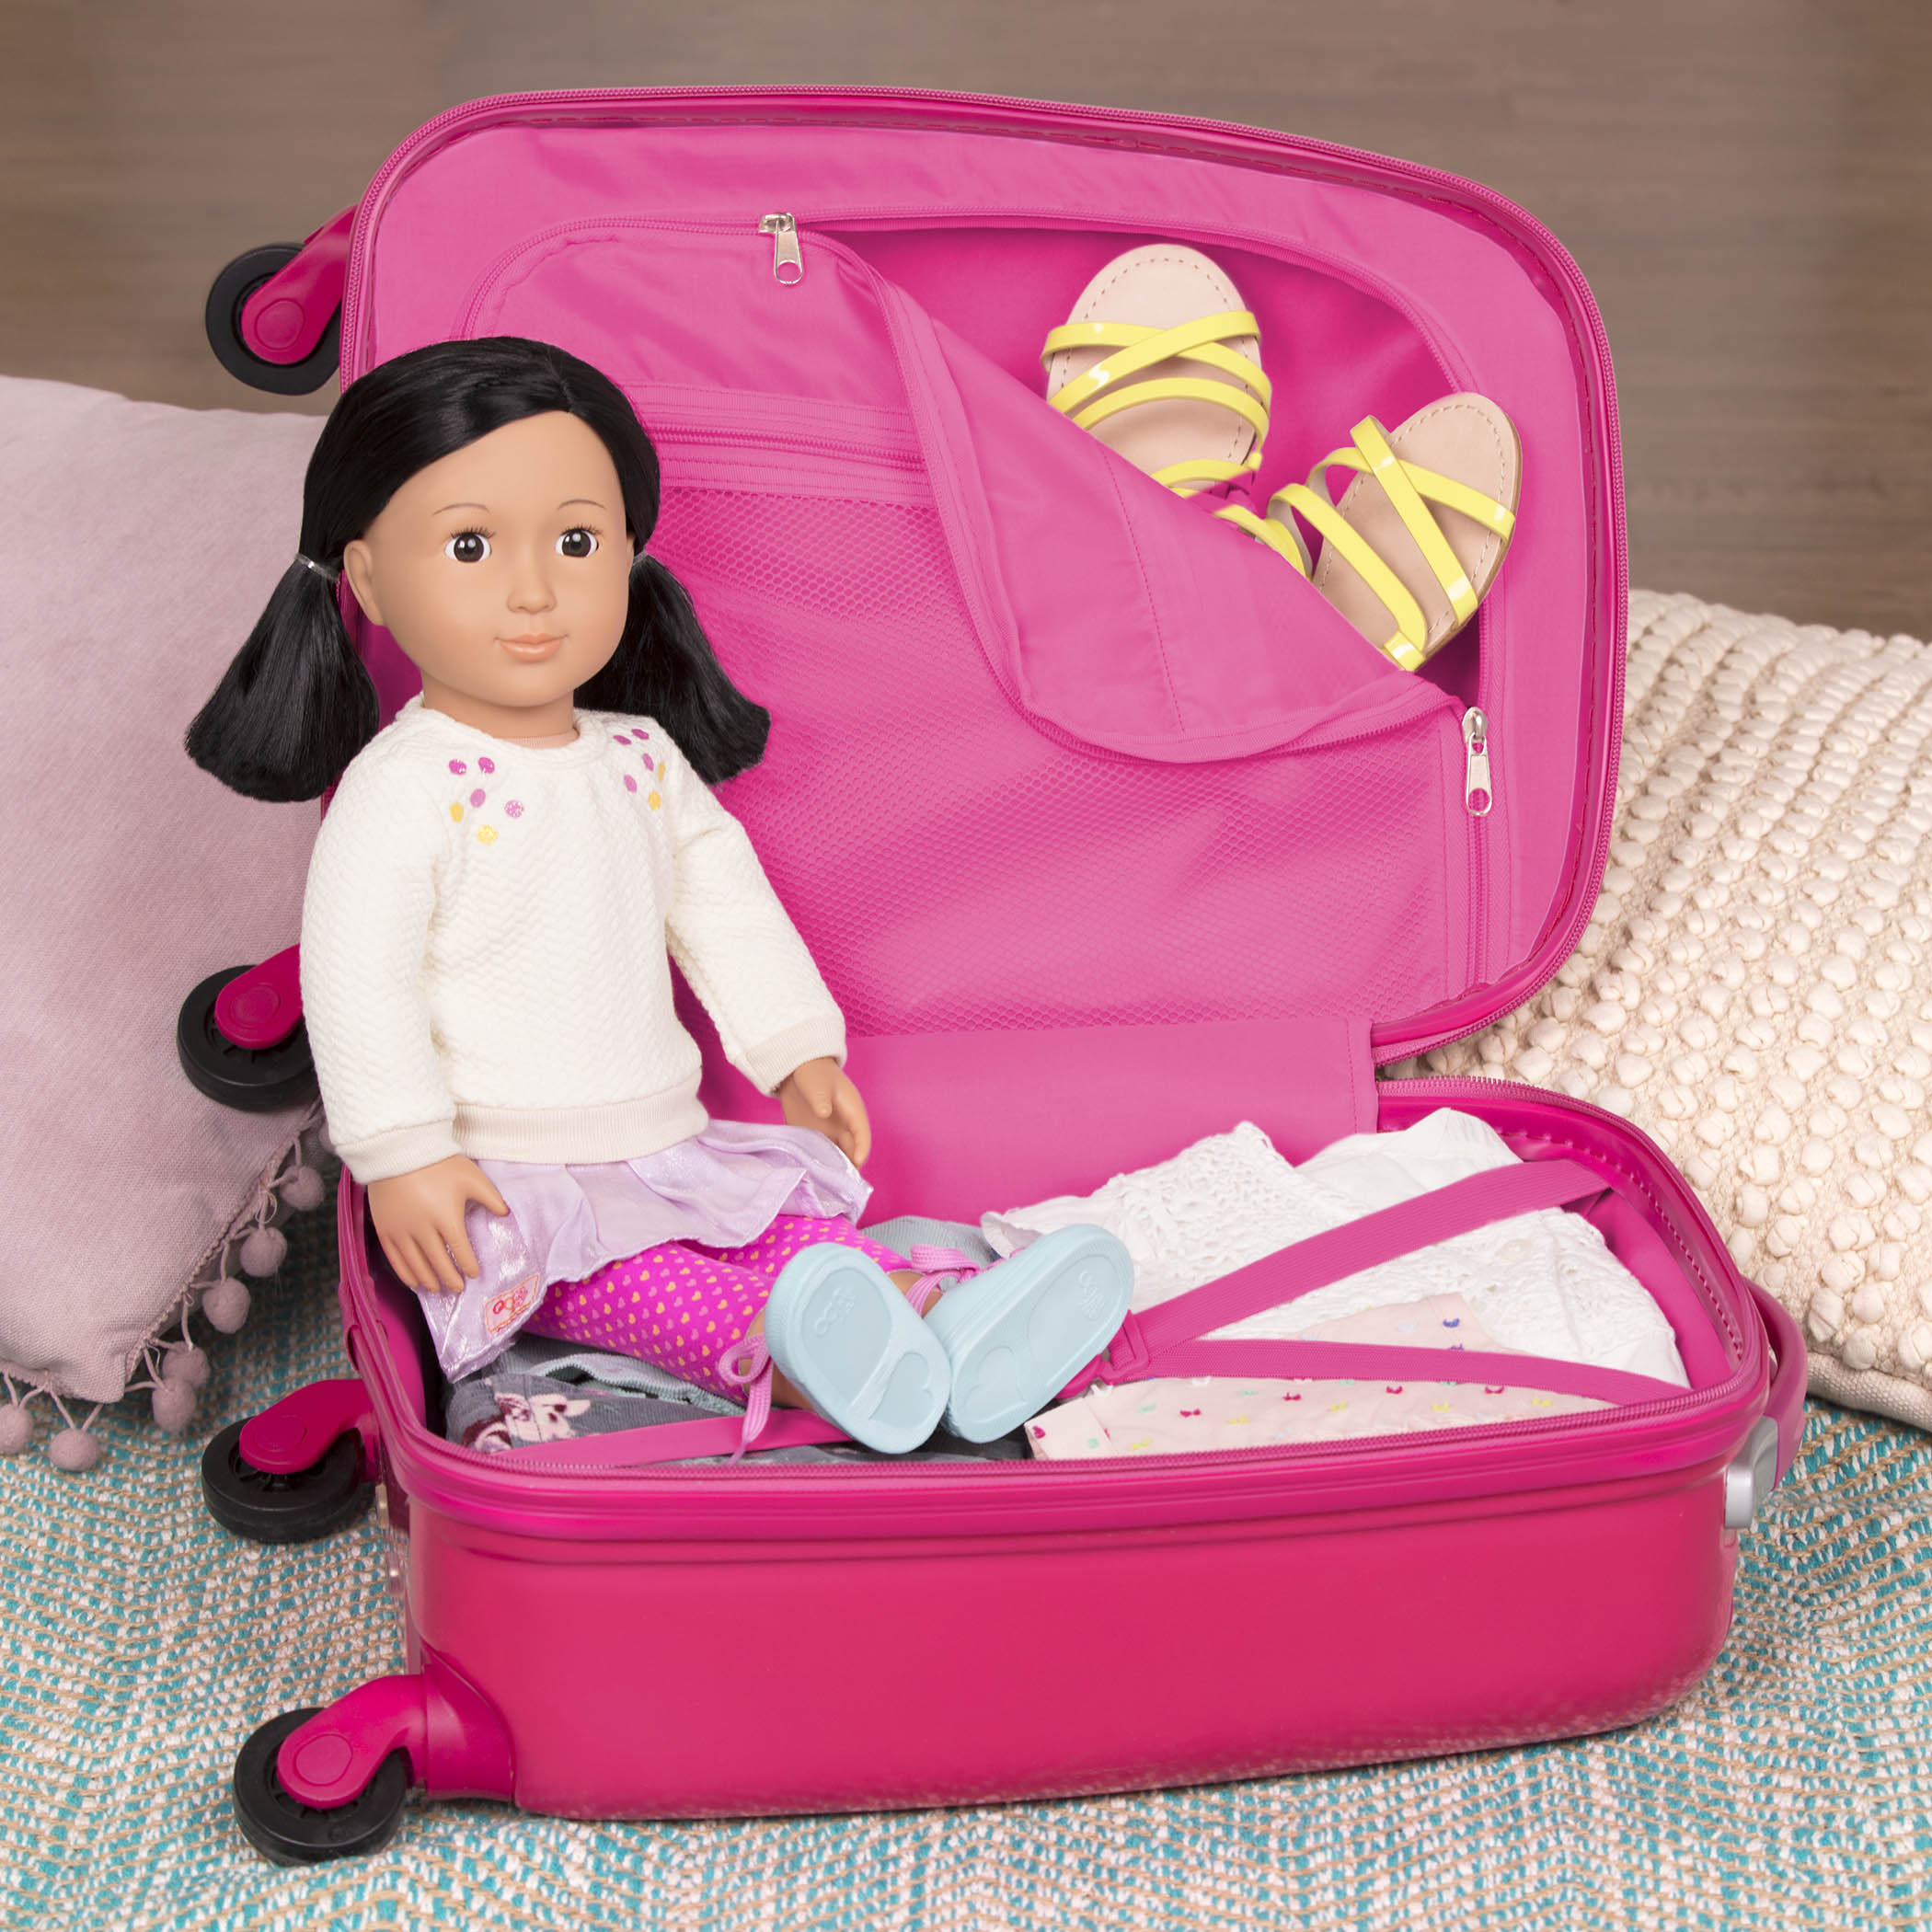 Carry On Dreaming with Suyin doll inside